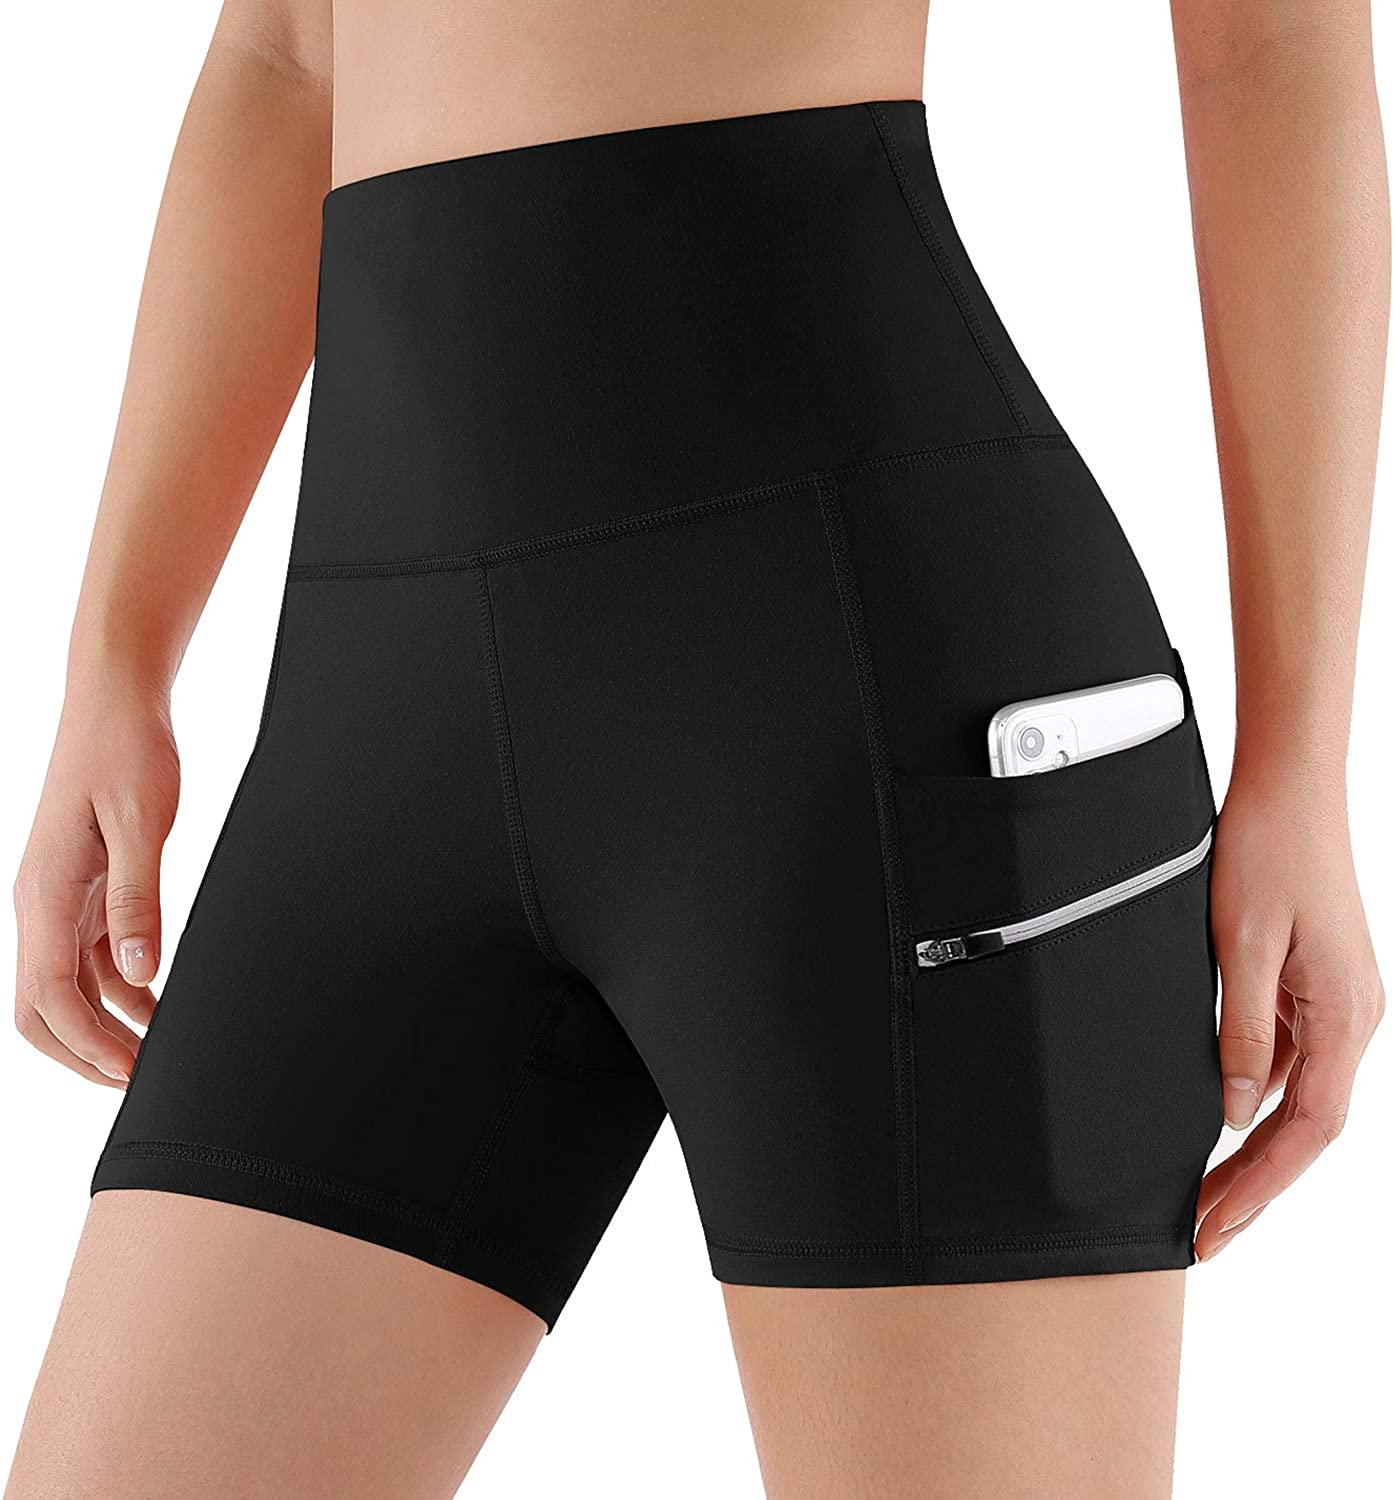 ODODOS Women's Dual Pockets High Waisted Workout Shorts, Yoga Running Cycling Hiking Athletic Shorts